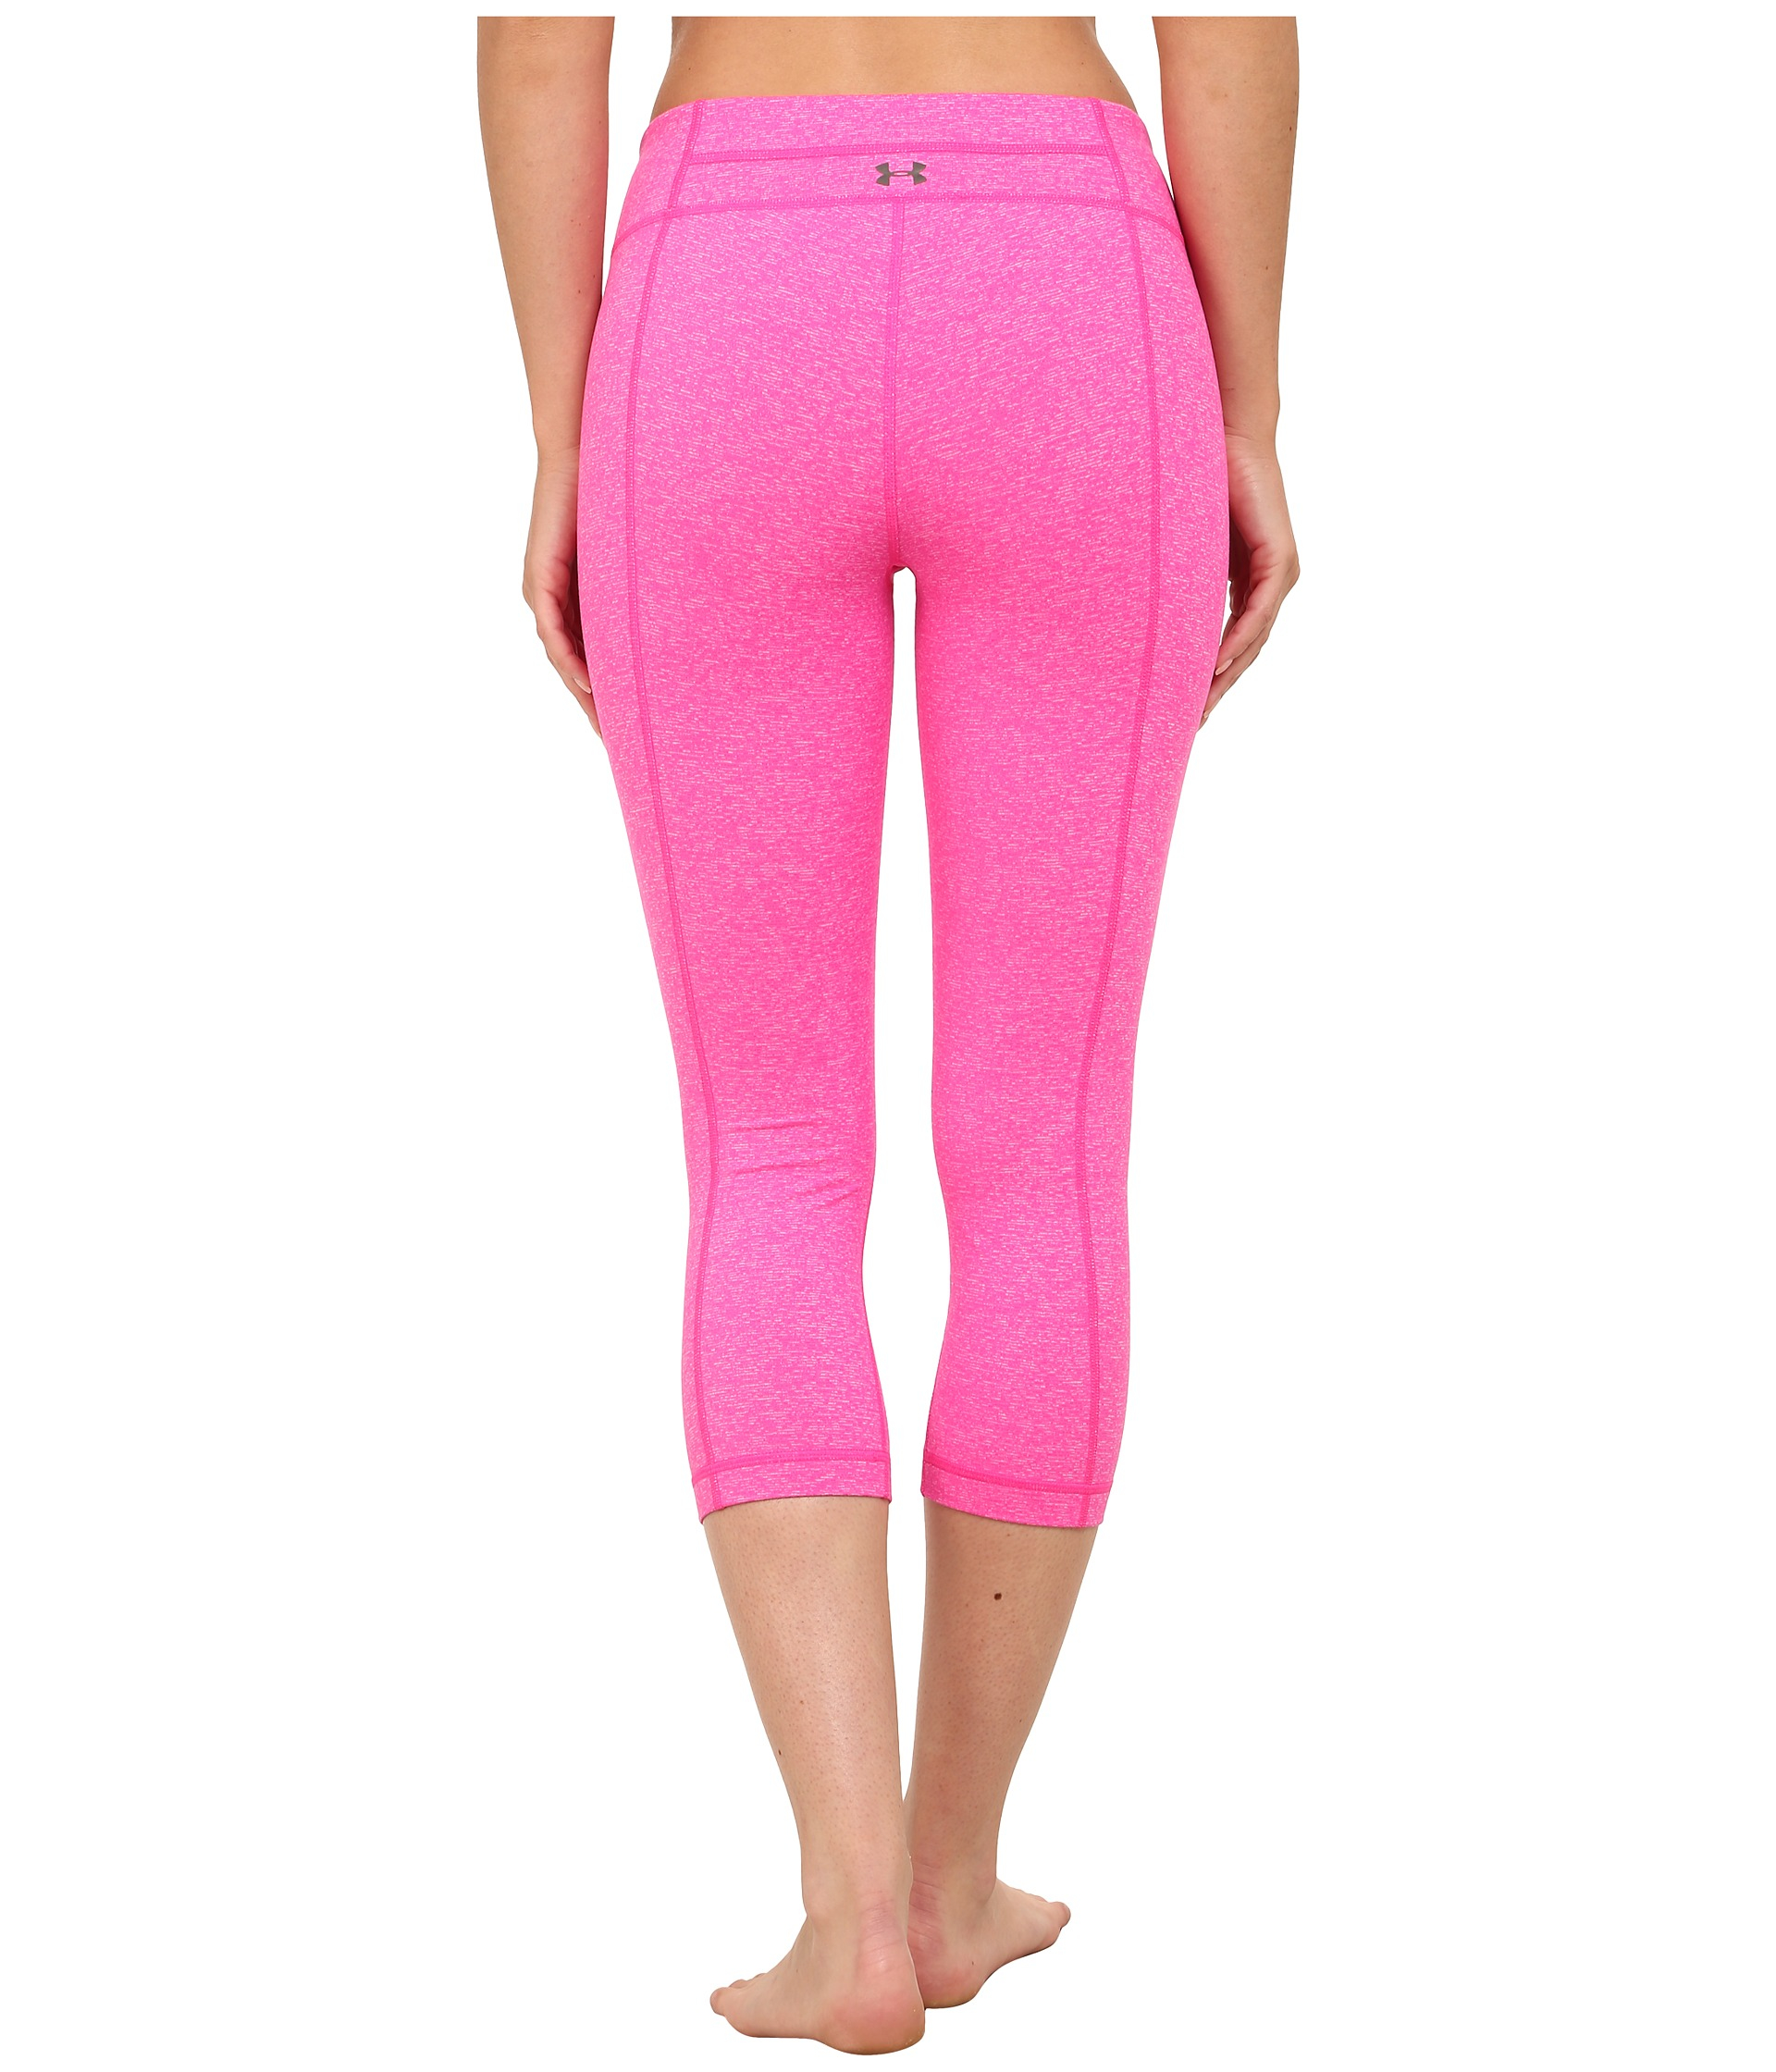 cf7cd19e00a0f6 Under Armour Ua Studio Tight Capri in Pink - Lyst